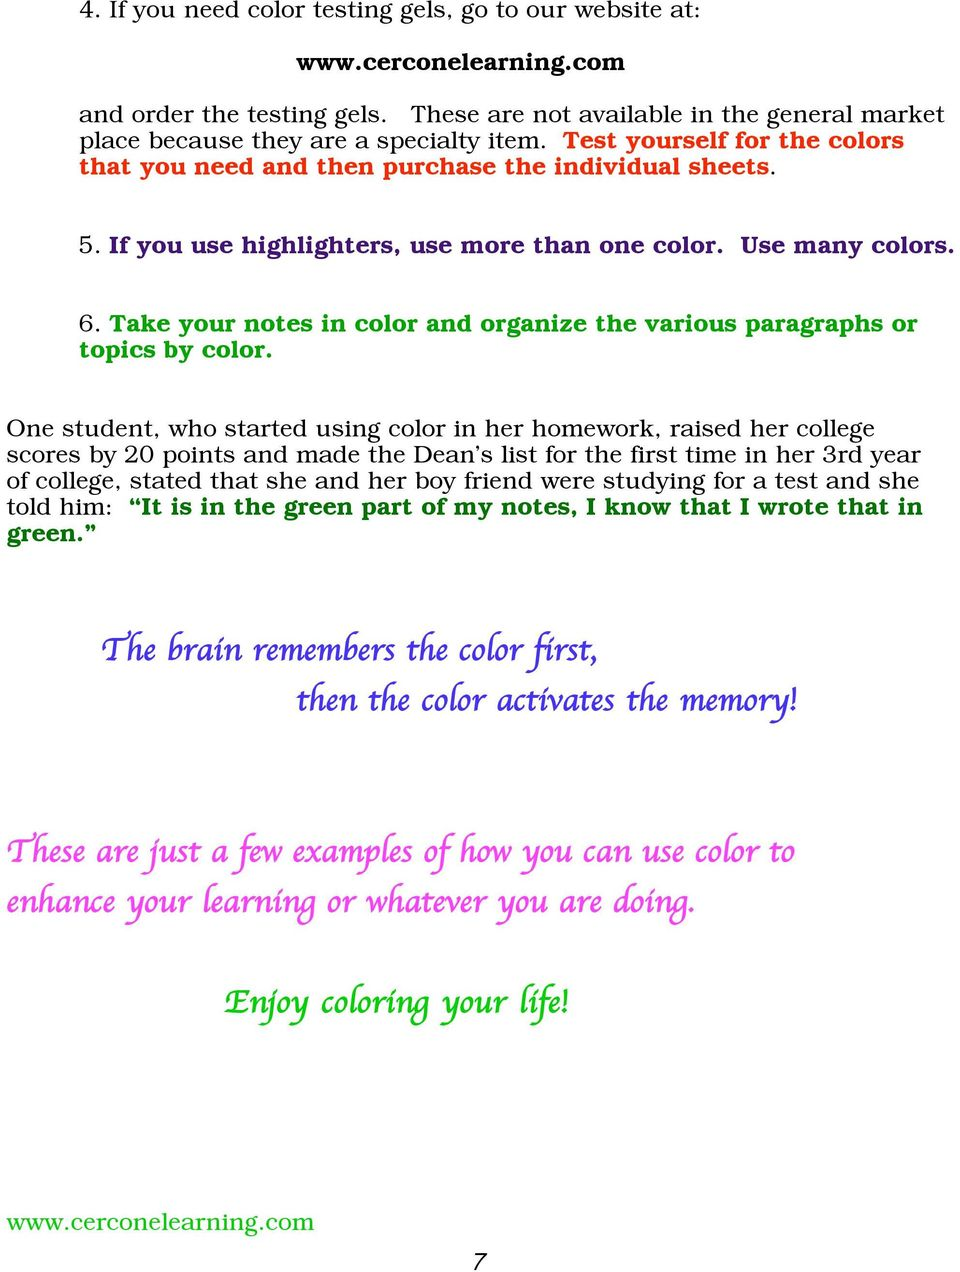 Take your notes in color and organize the various paragraphs or topics by color.